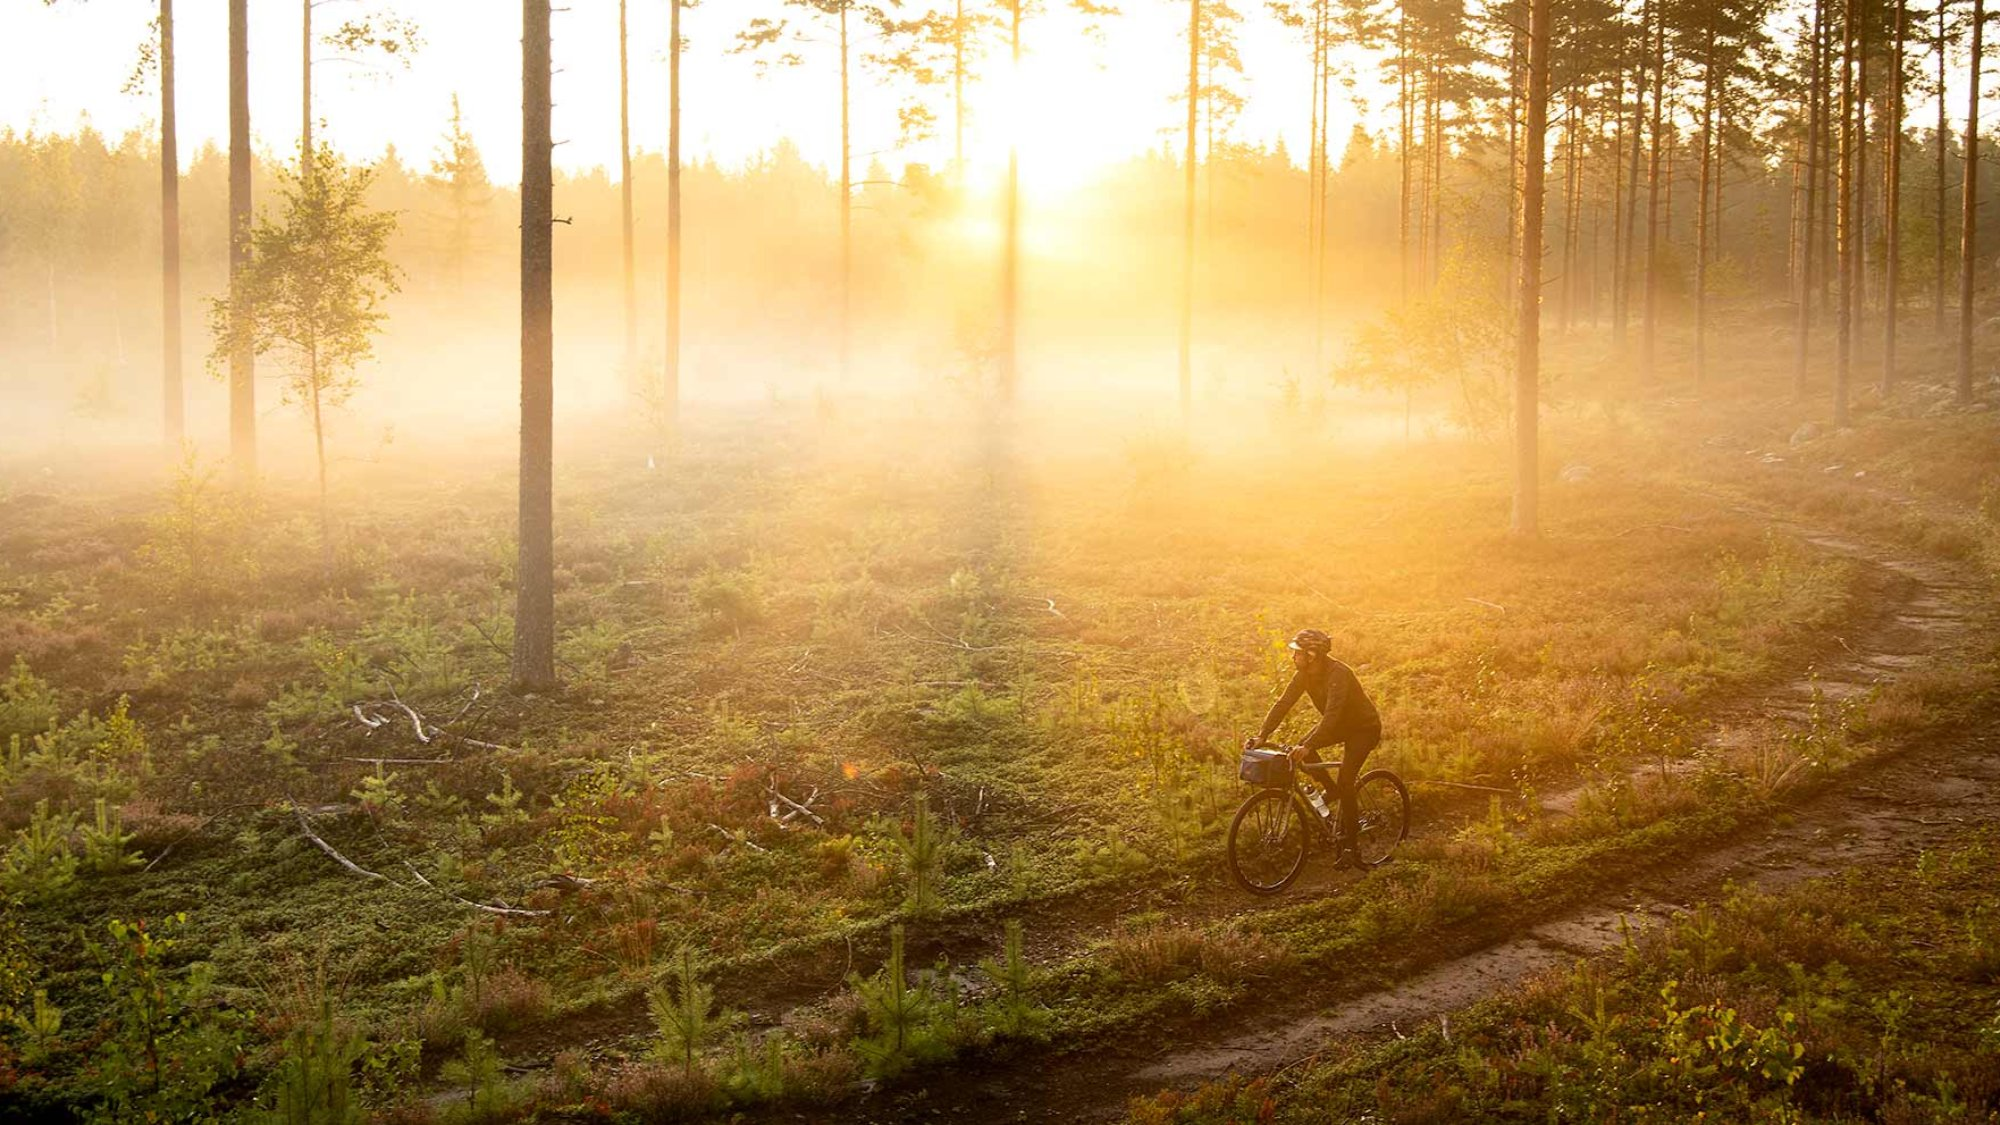 man riding a bike in a forest